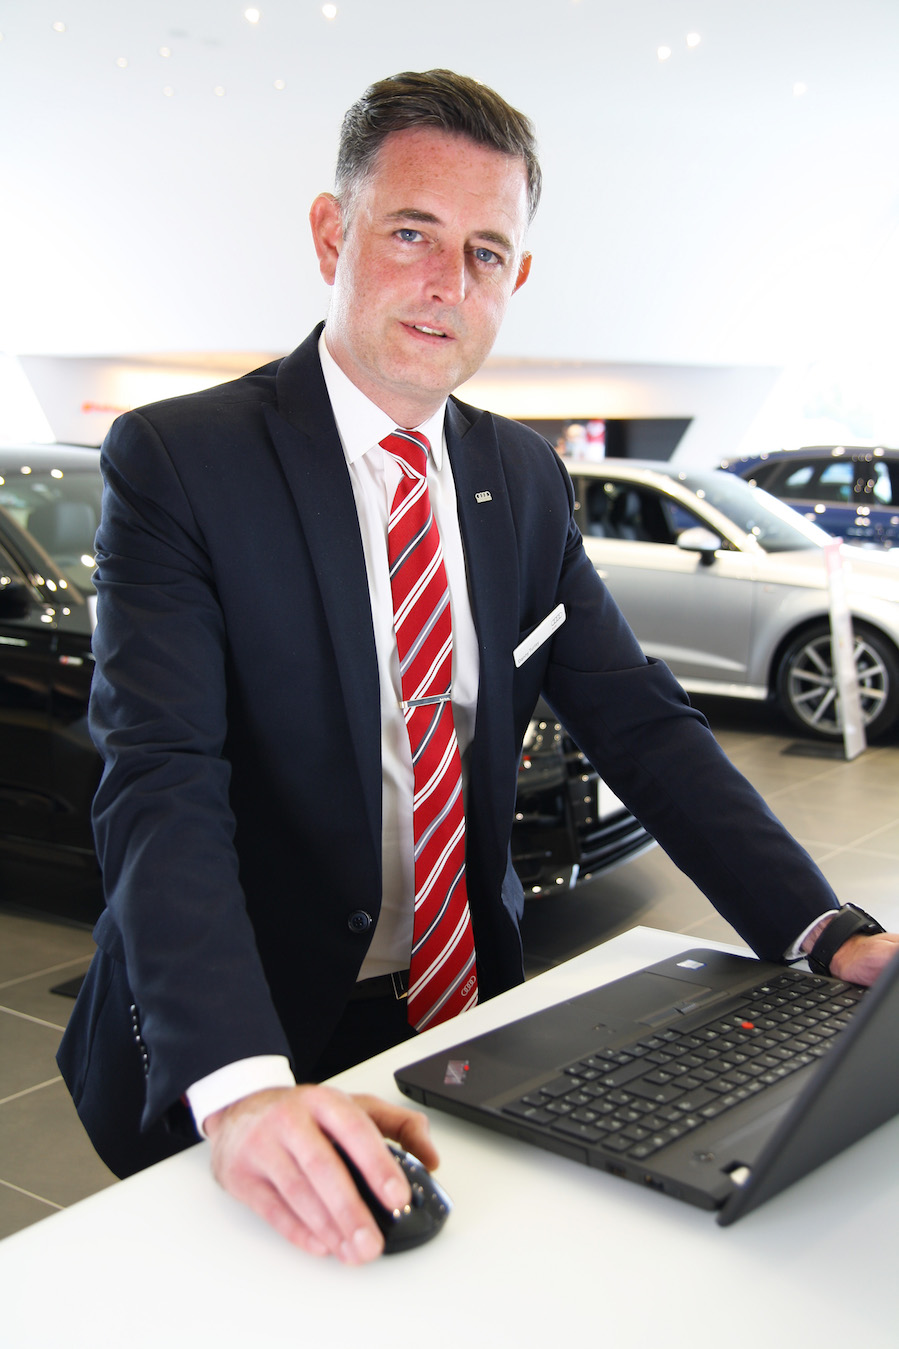 danny-turley-poole-audi-assistant-manager-copy